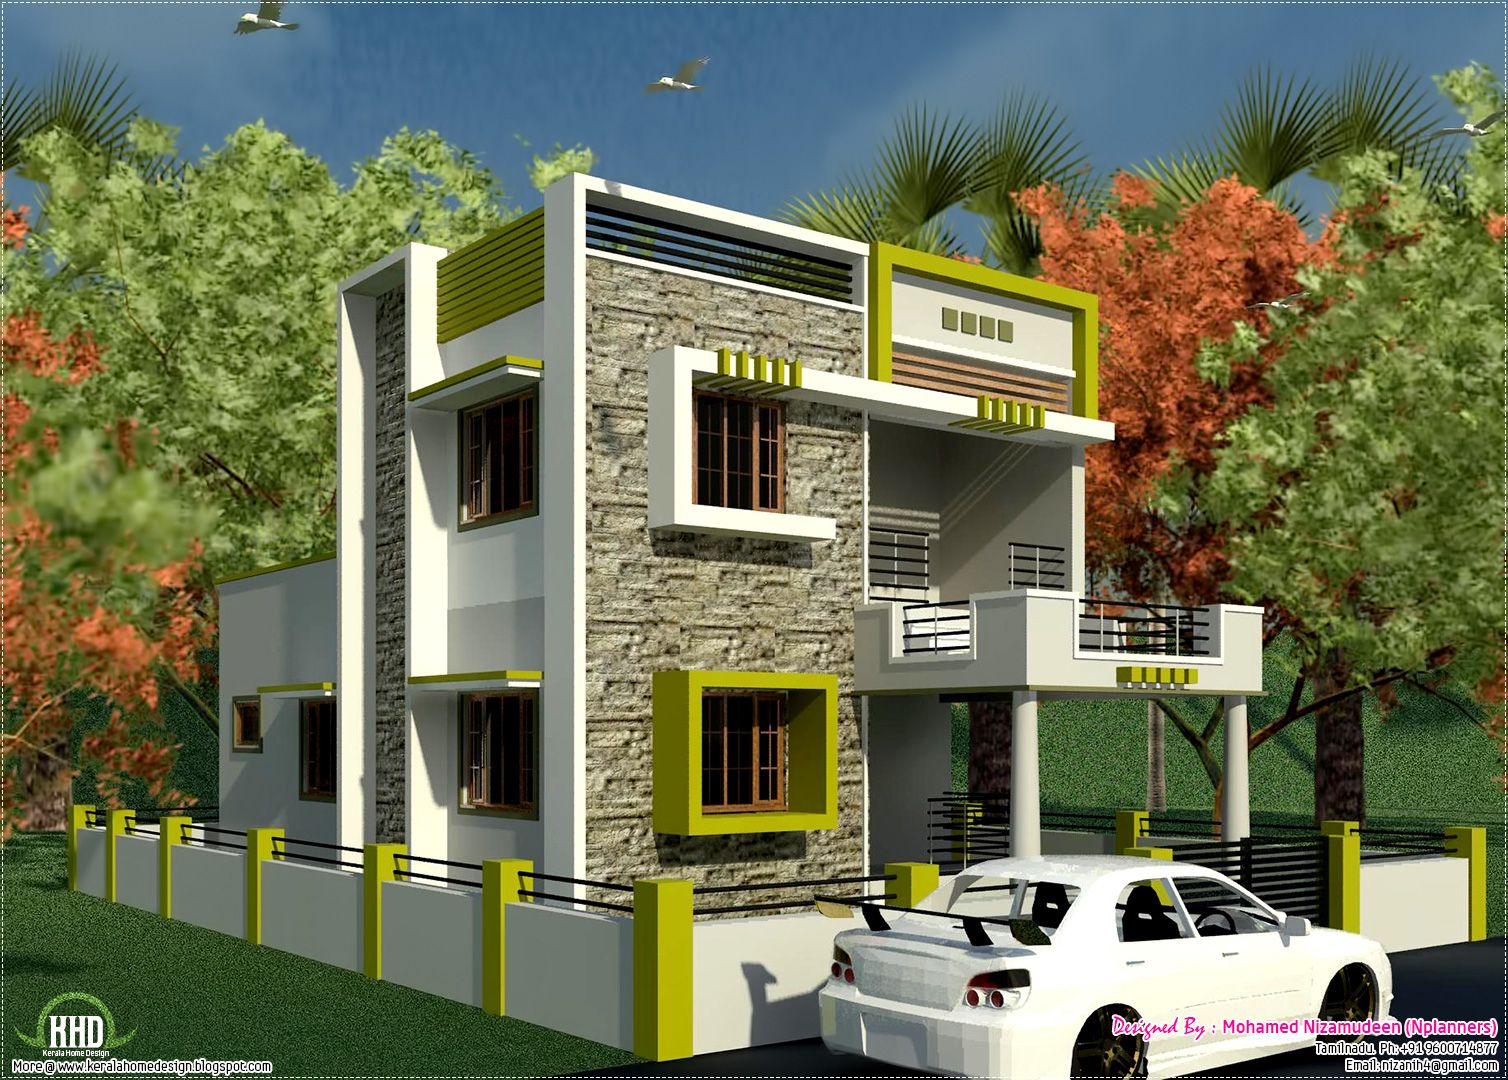 Small house with car park design tobfav com ideas for for Home front design model